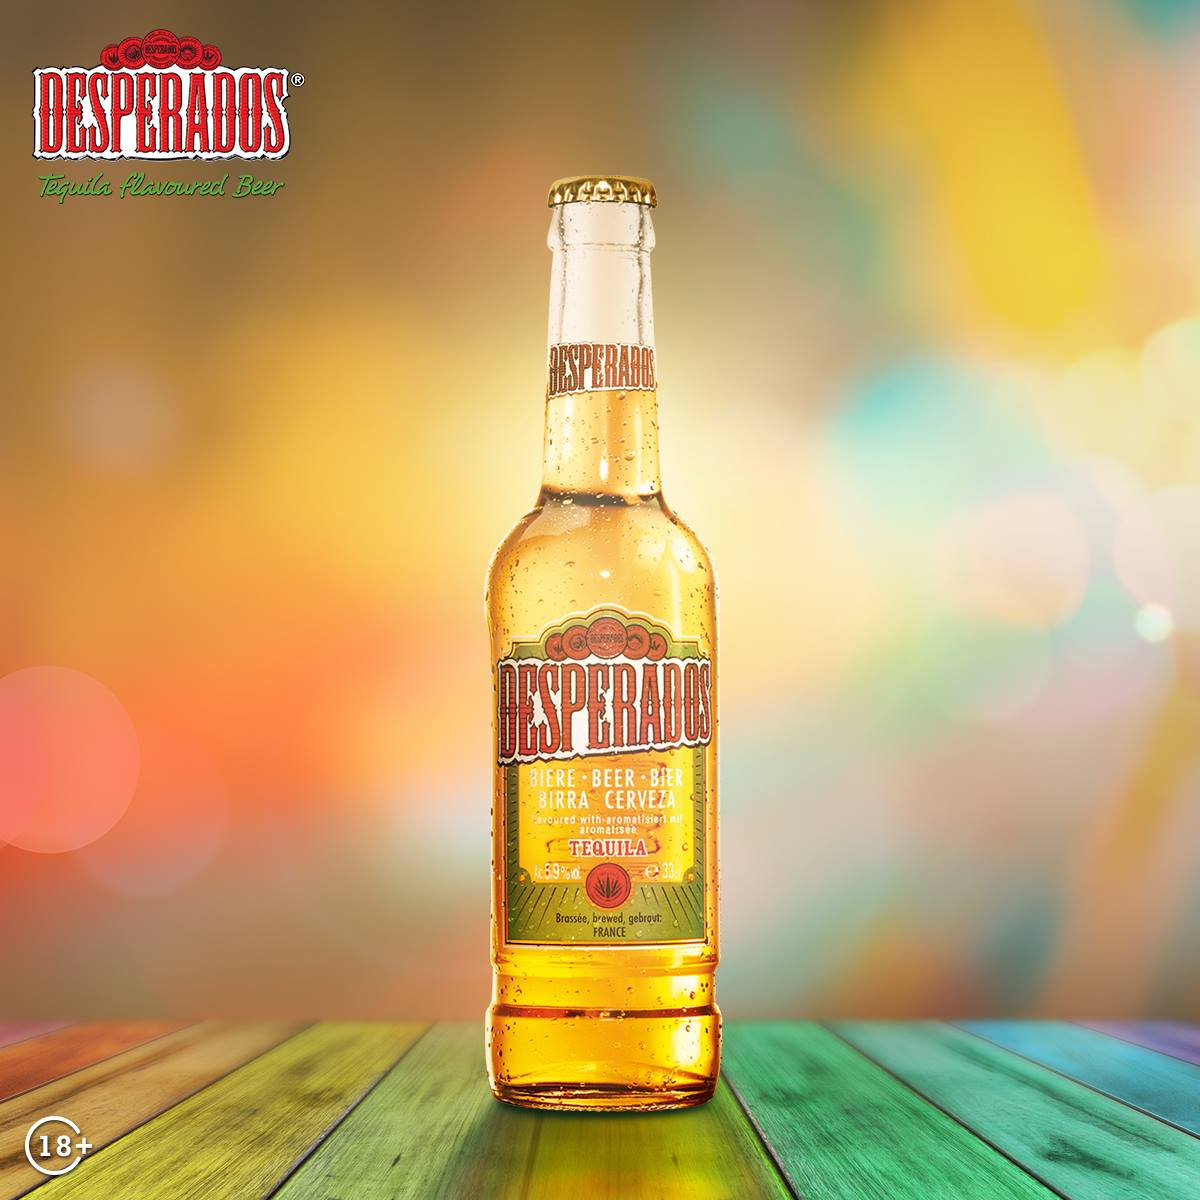 Desperados Original Gbm